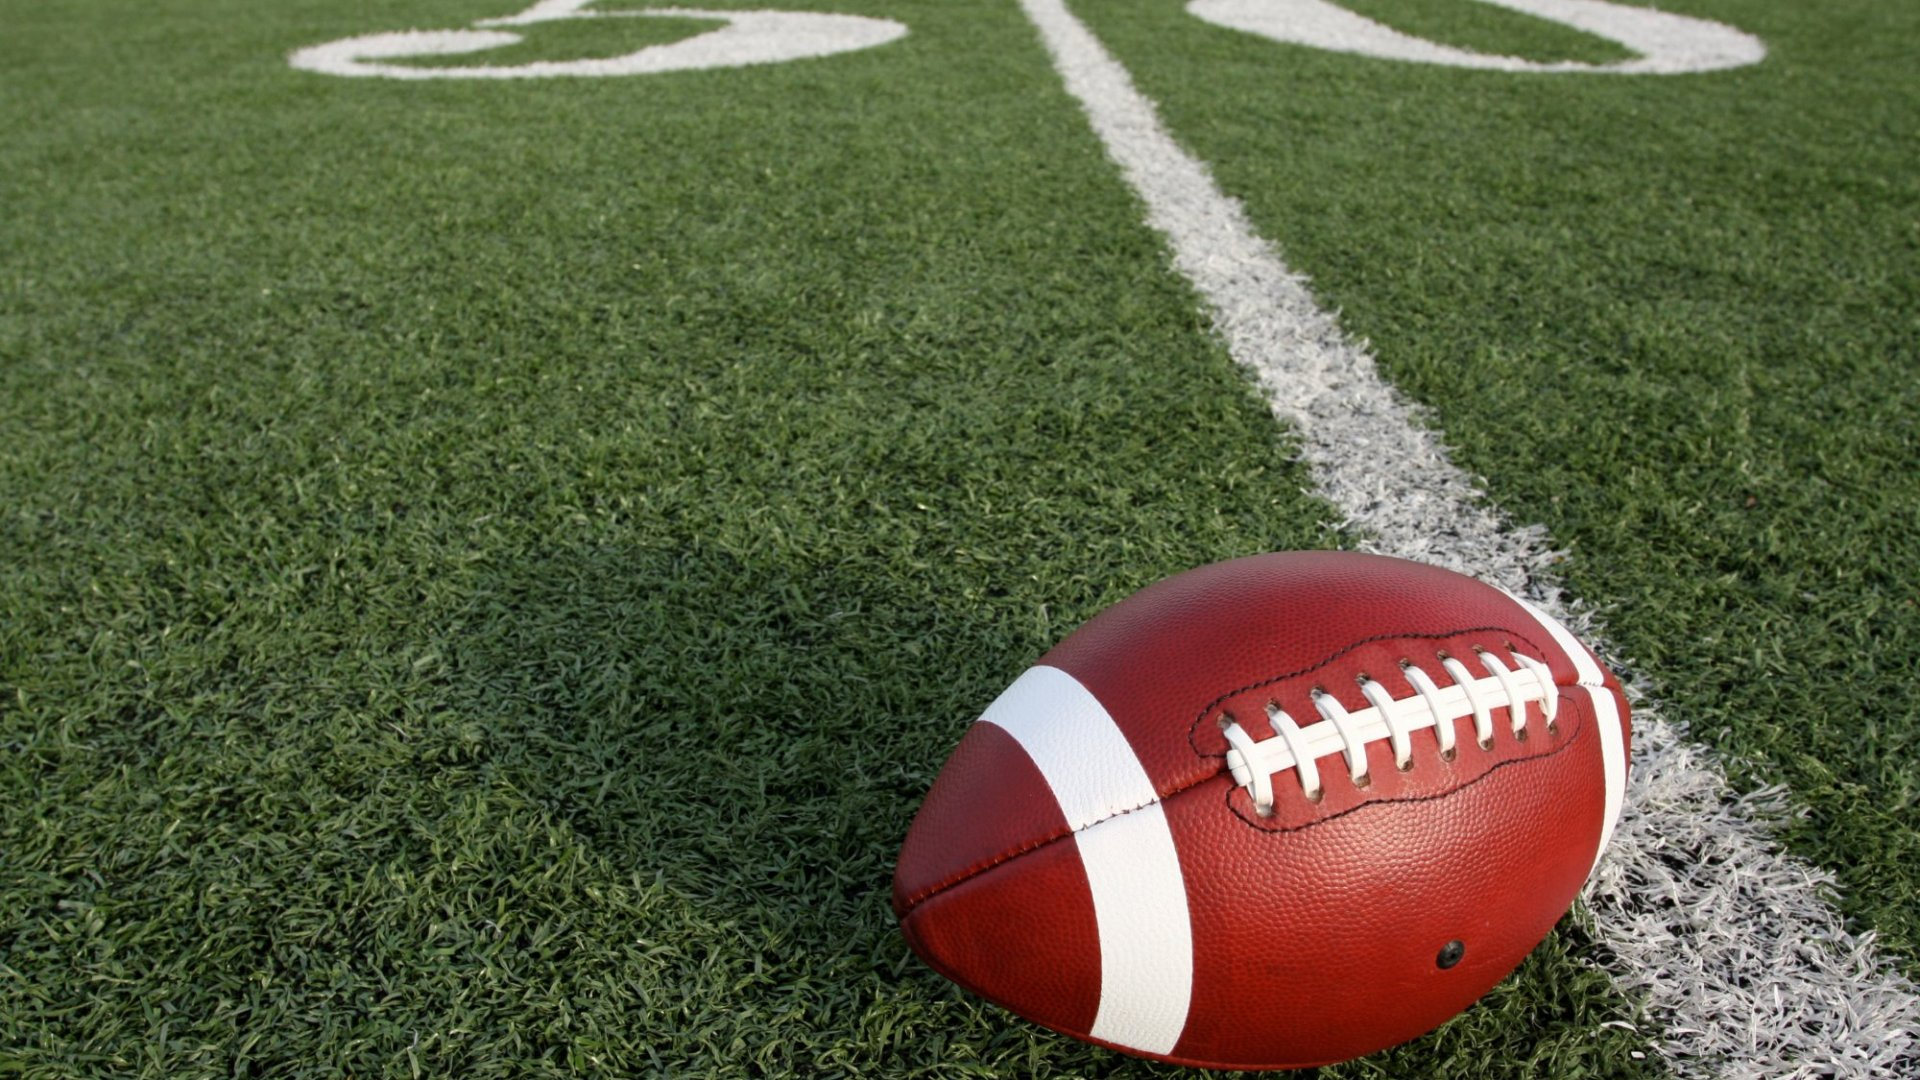 Winning Sales Teams Use These 3 Lessons From Pro Football